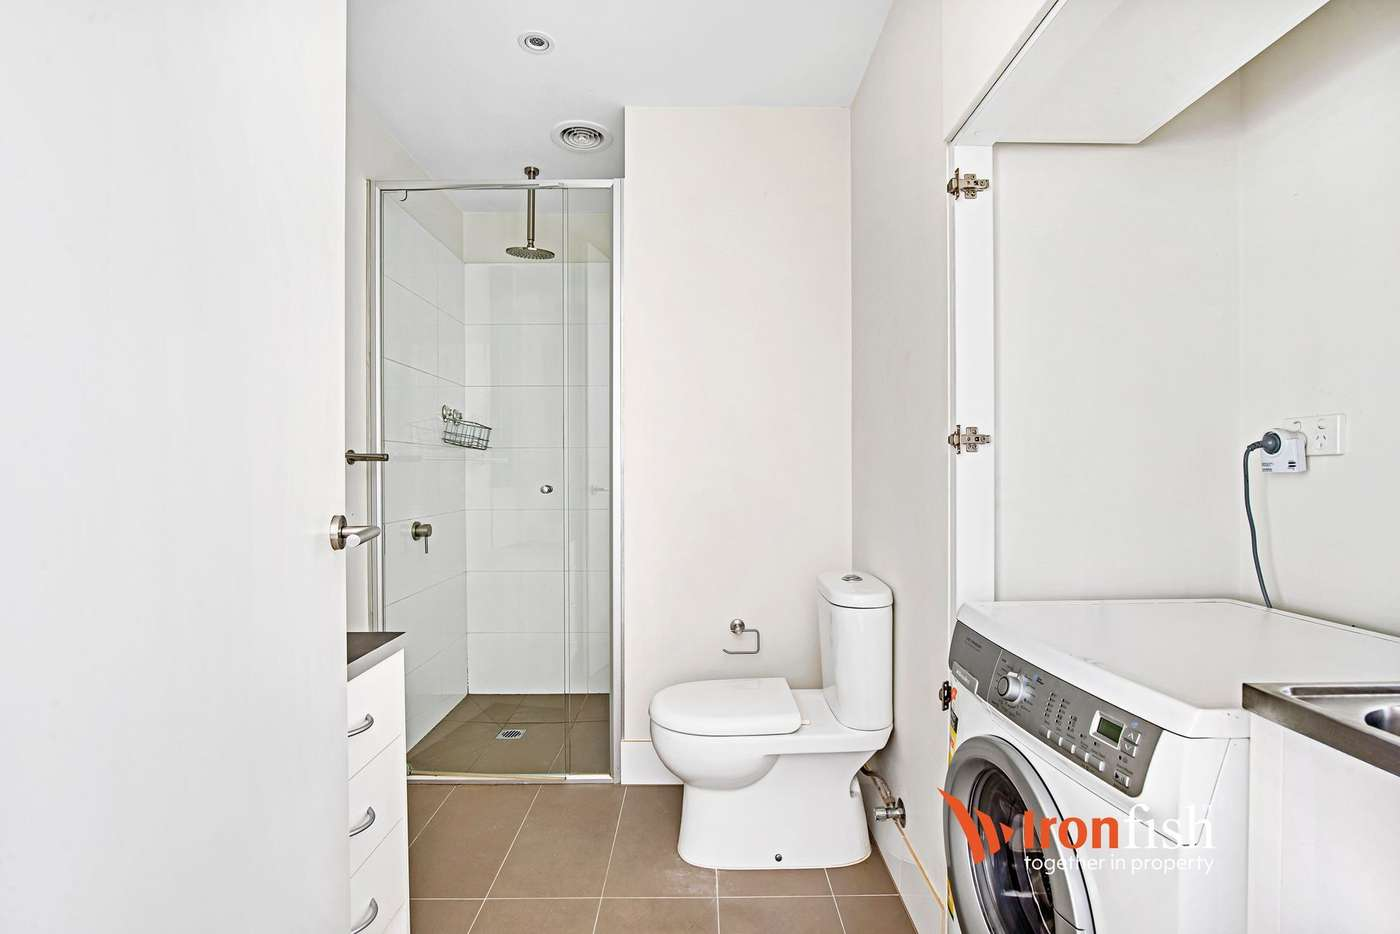 Seventh view of Homely apartment listing, 704/95 Berkeley Street, Melbourne VIC 3000